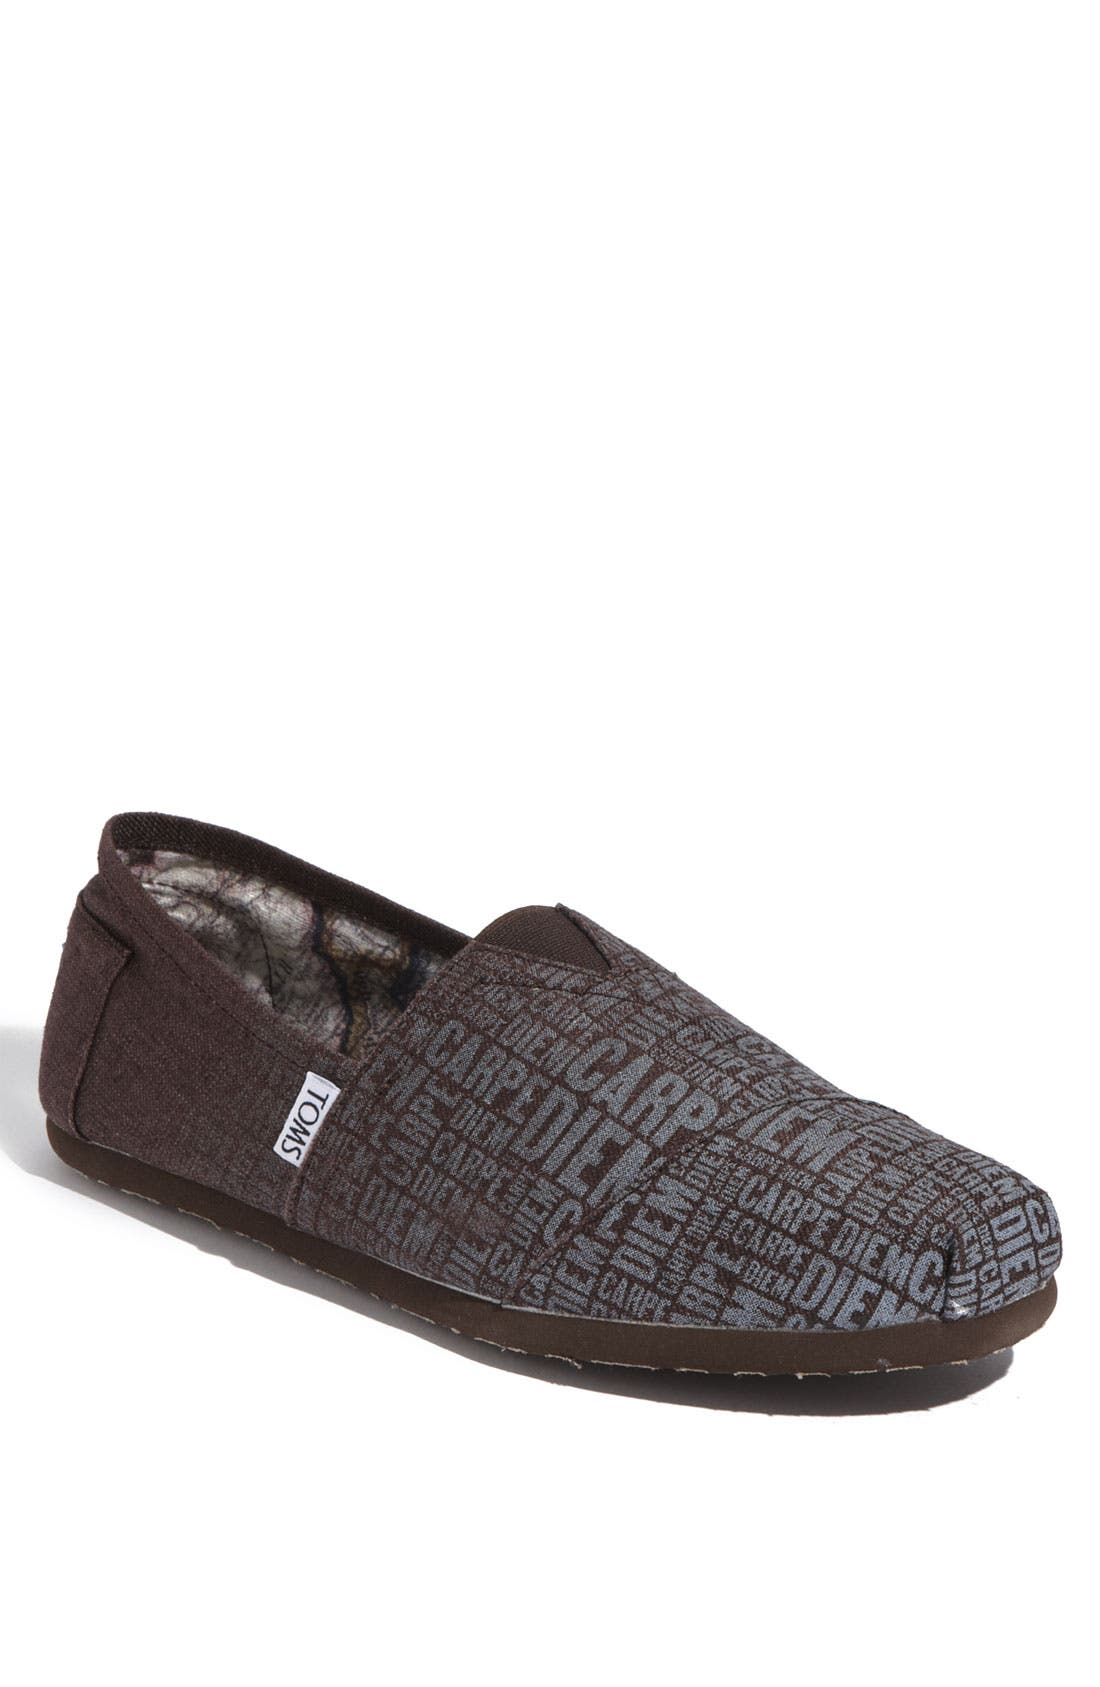 Alternate Image 1 Selected - TOMS 'Classic - Print' Canvas Slip-On (Men)